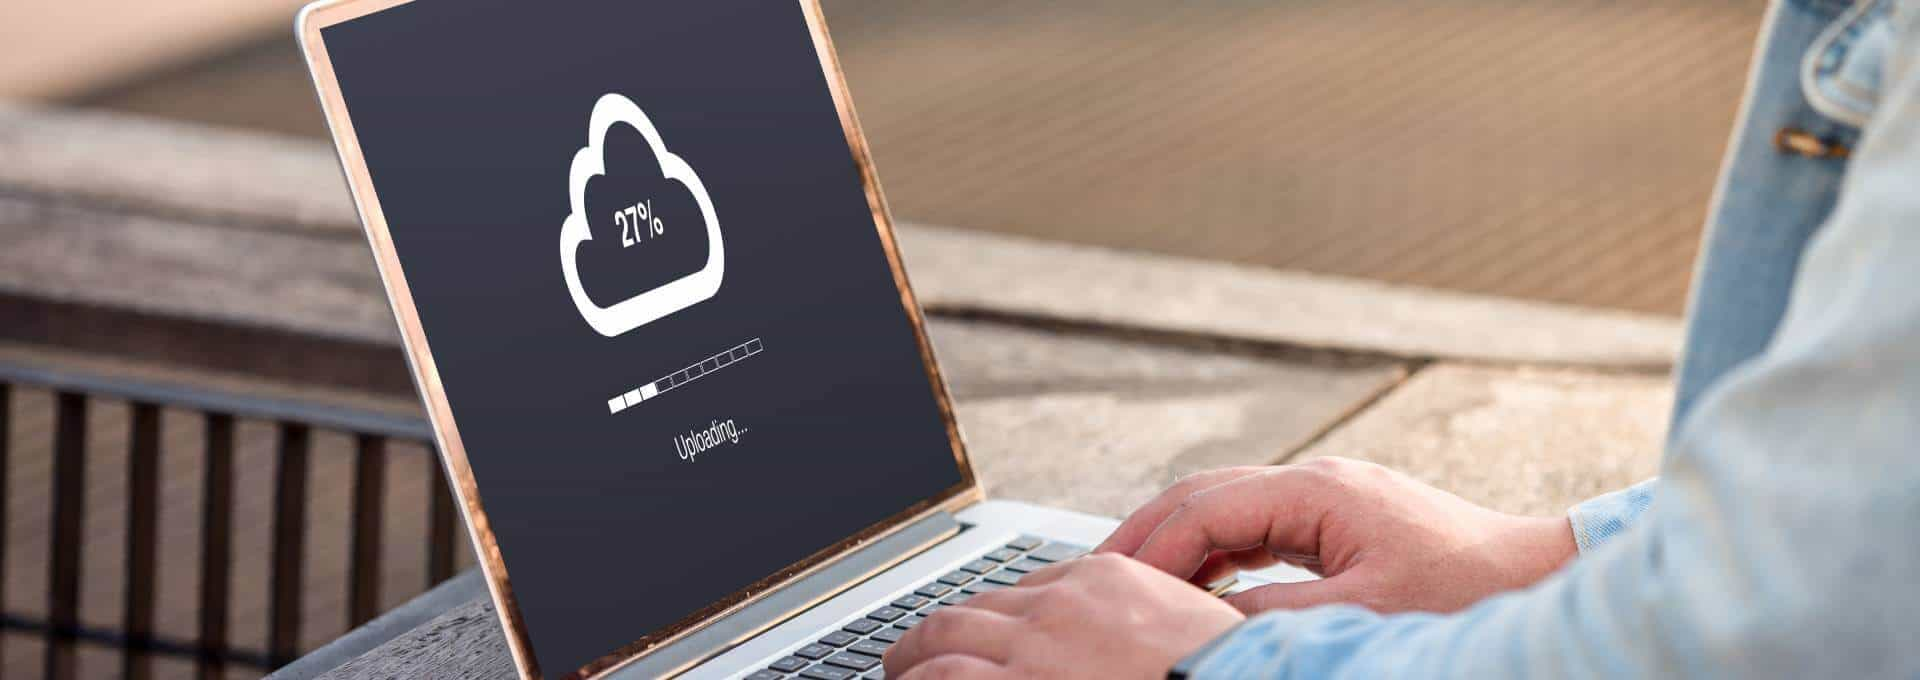 Cloud2Cloud Backup Datensicherung